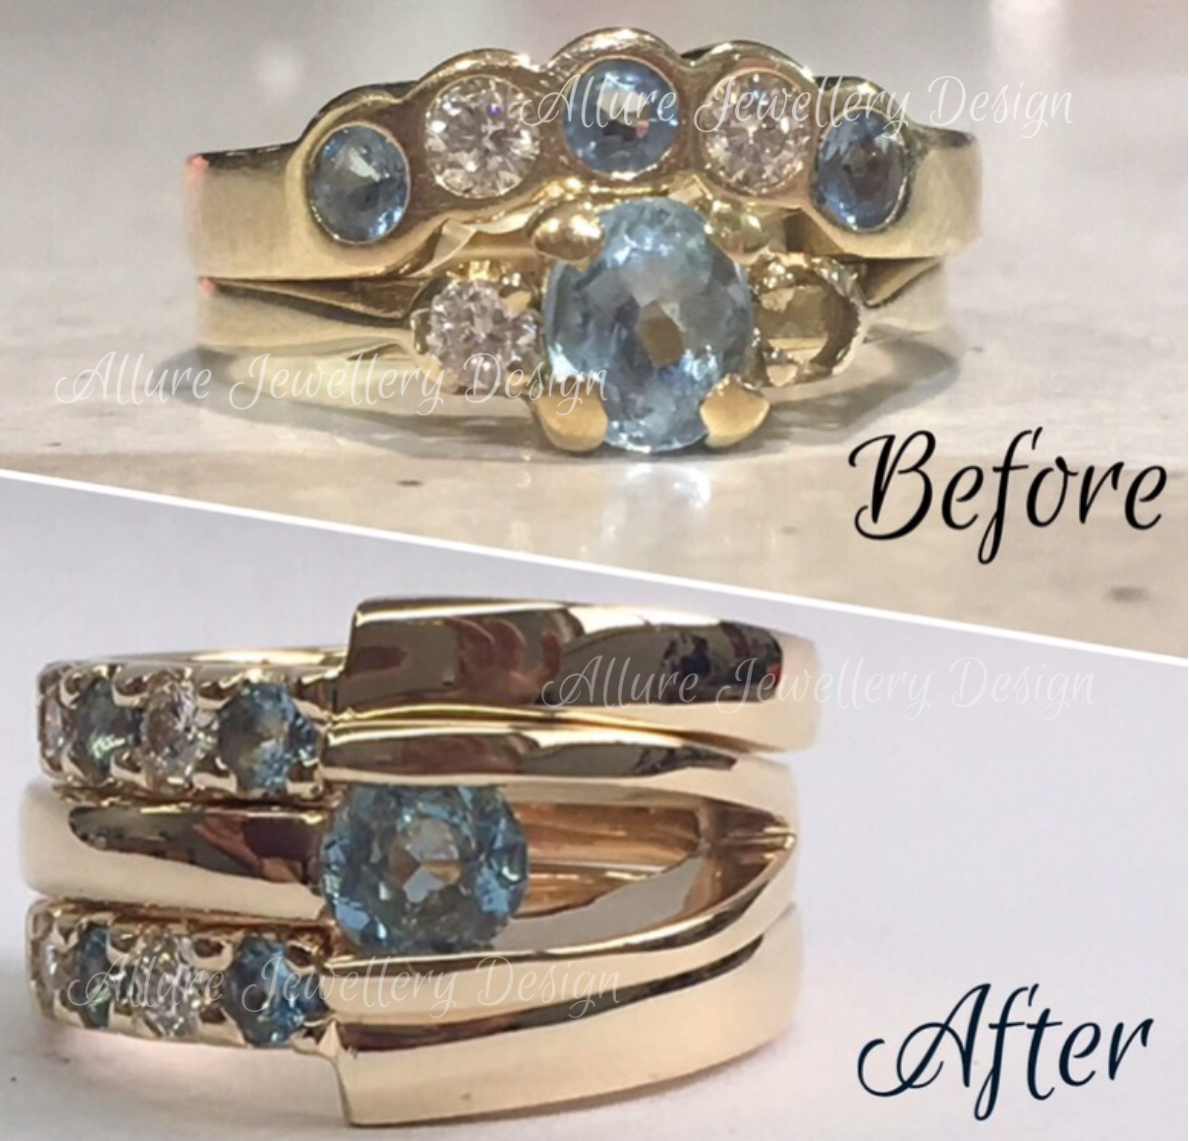 Remodel before and after, using customers gold and stones.